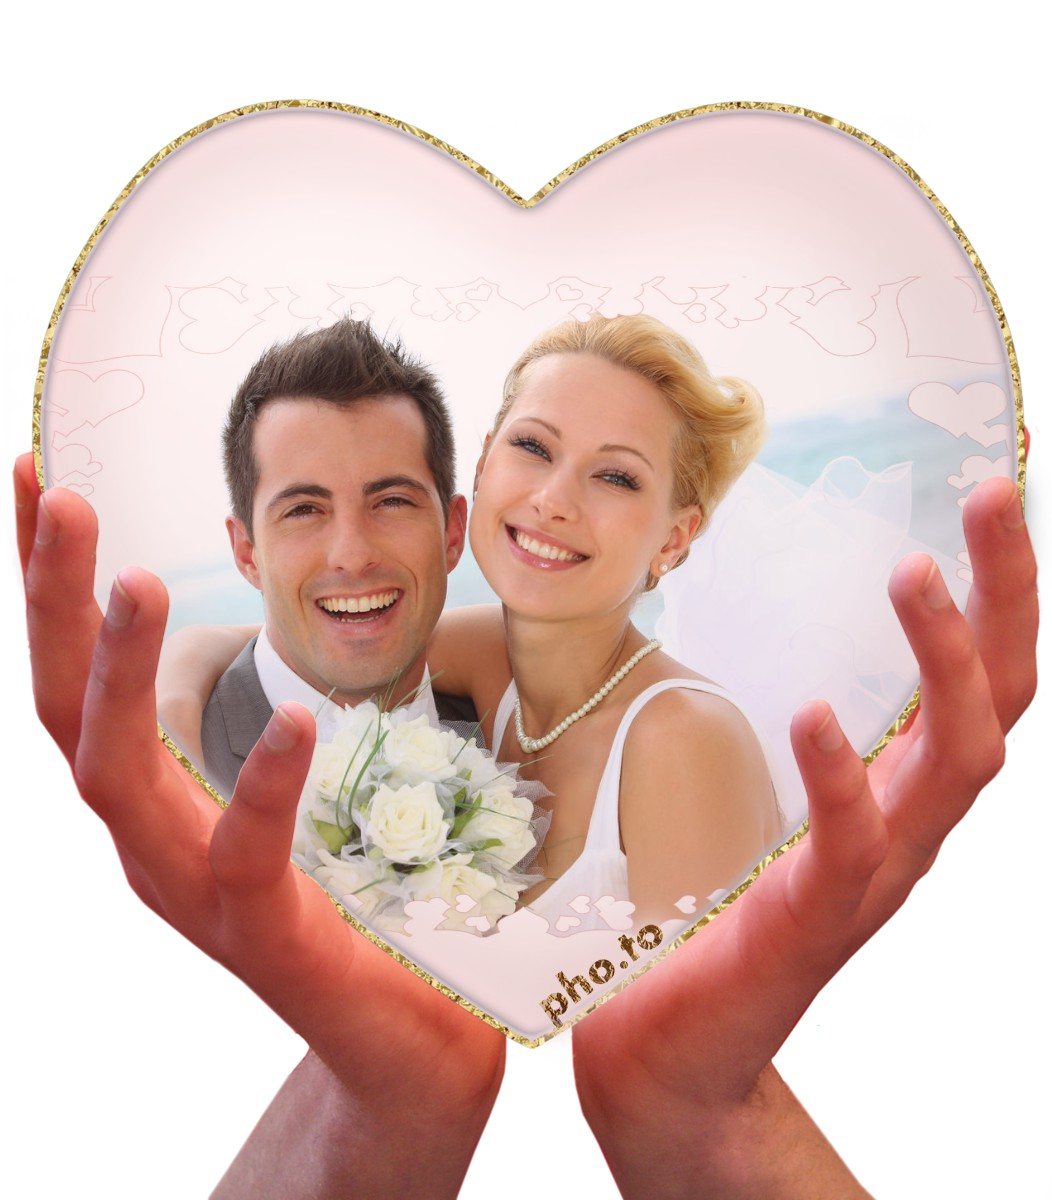 A wedding photo can get a more romantic look with a heart photo effect.